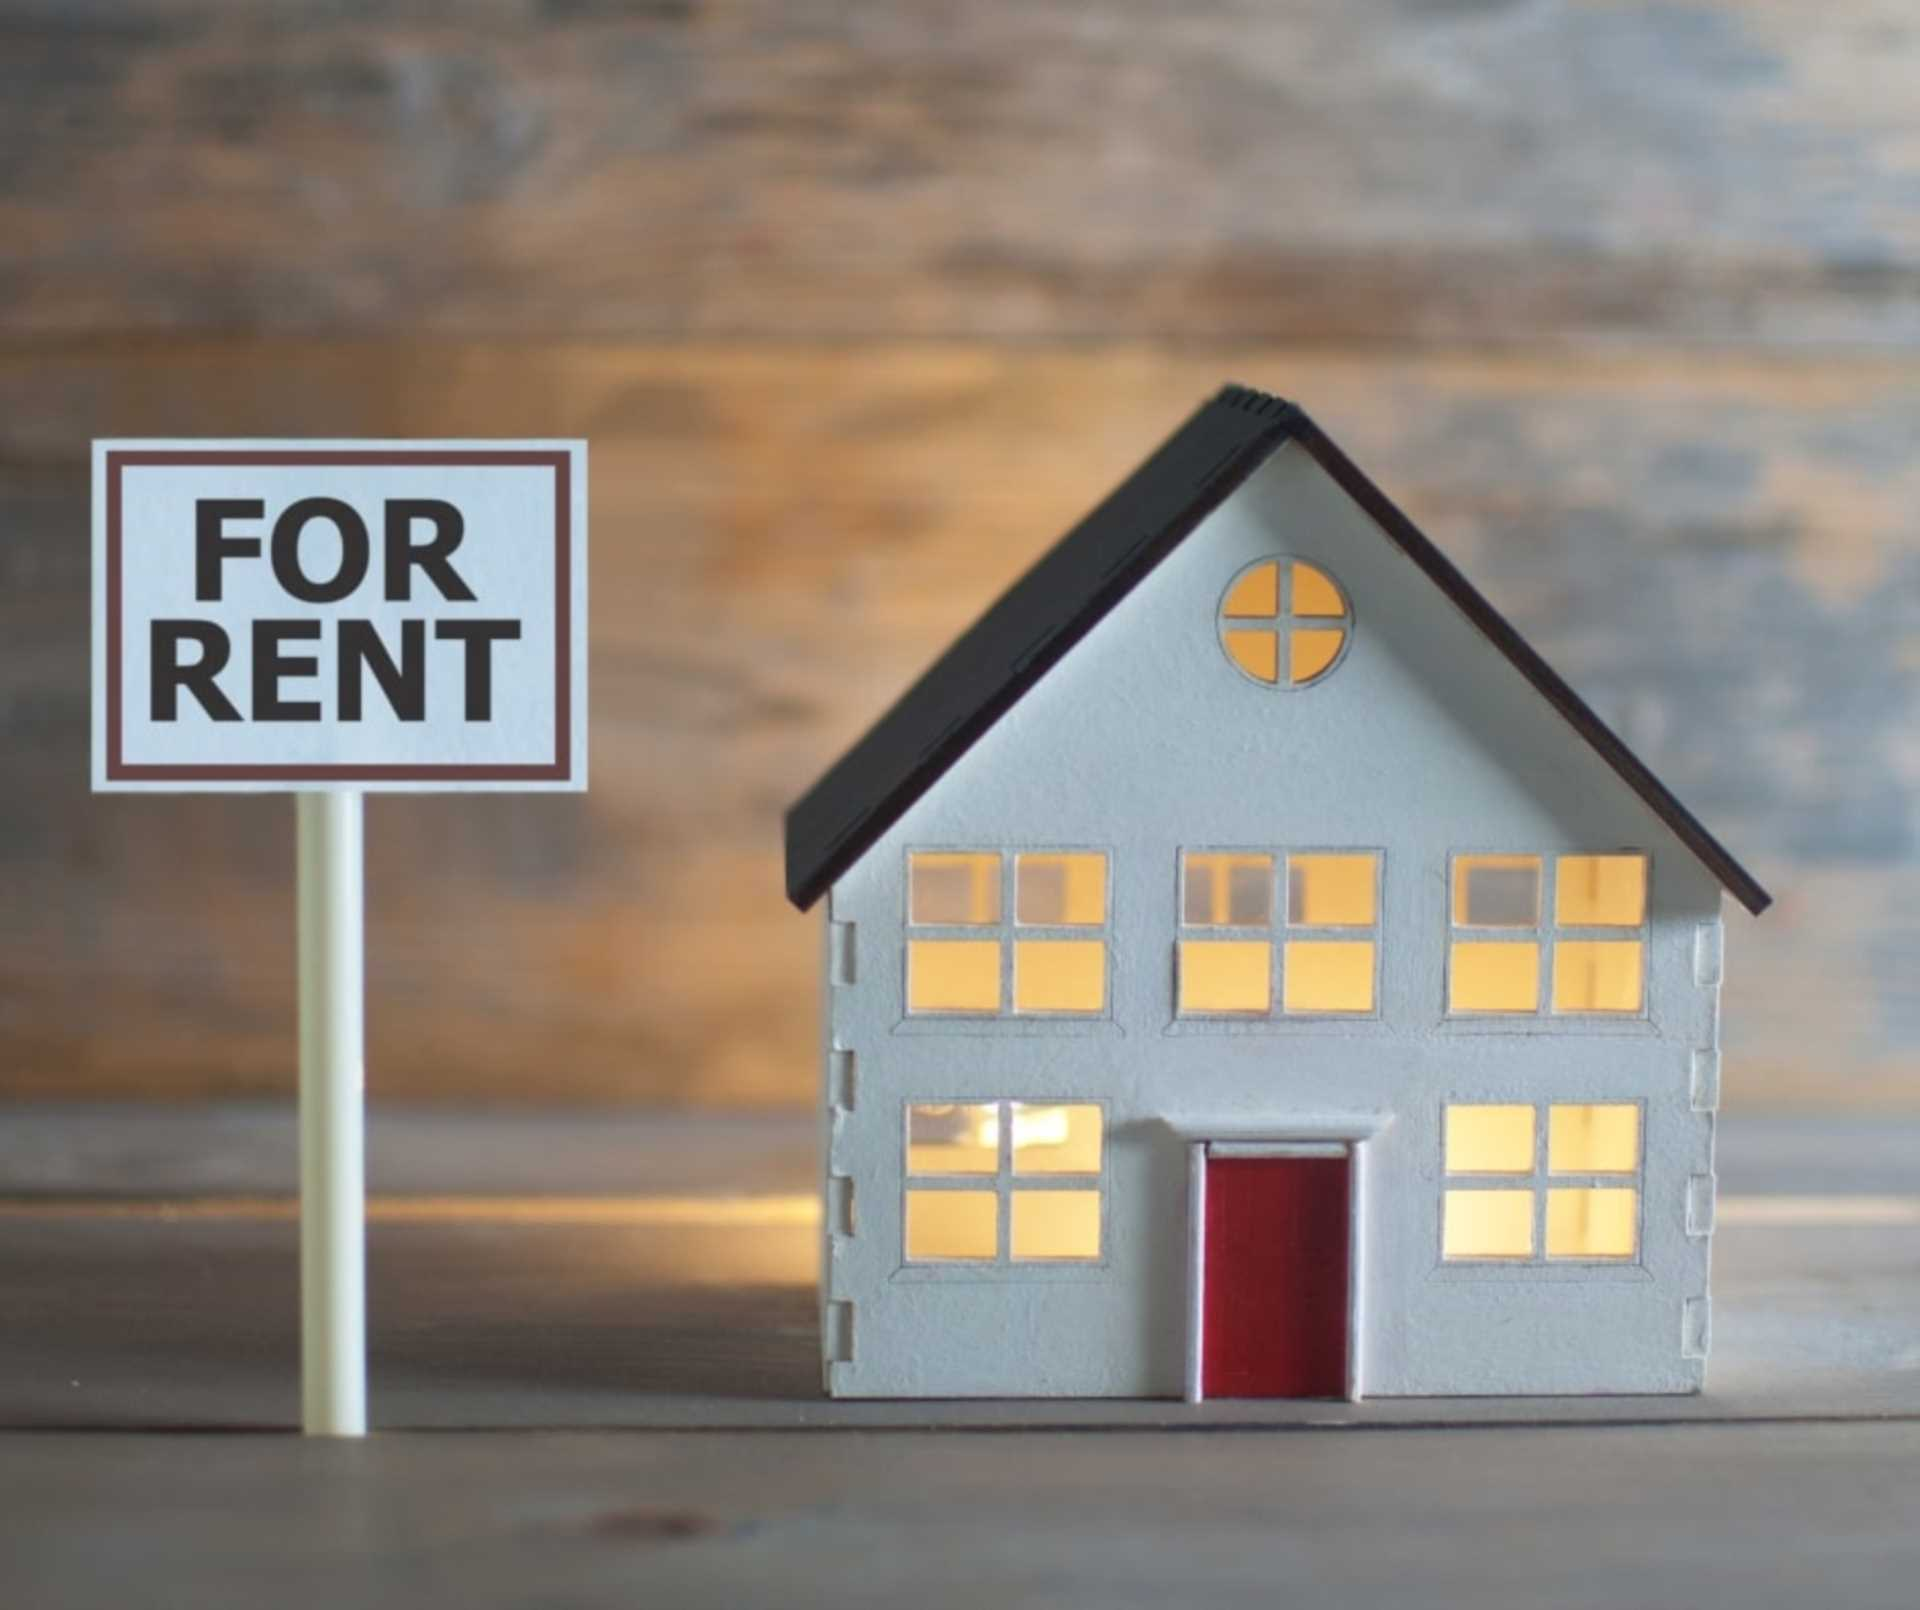 How to Prepare Your Property for Rent